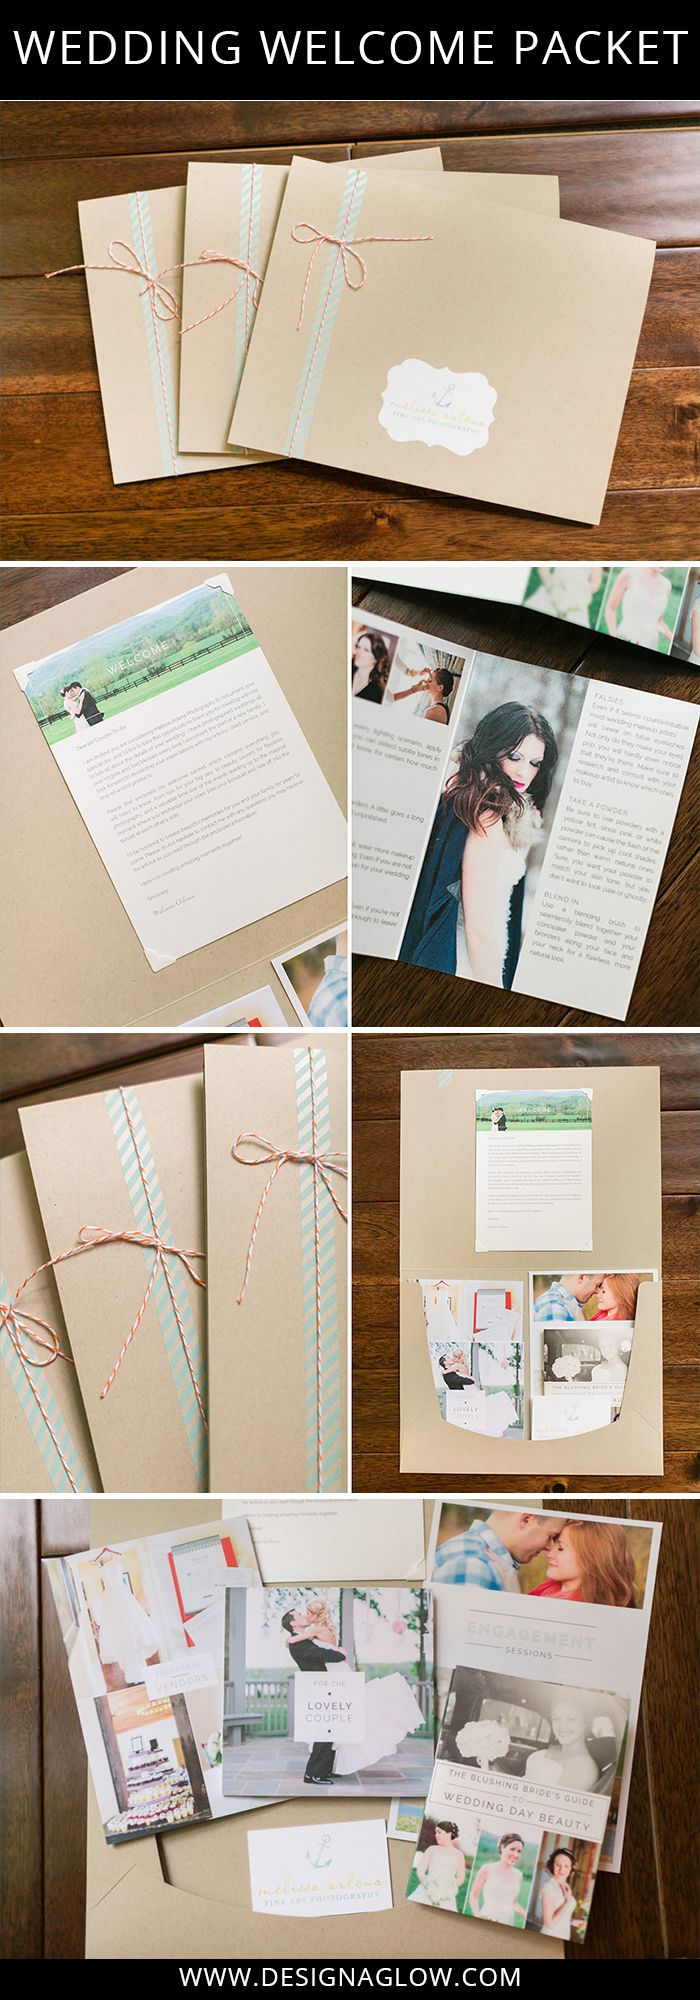 See our Wedding Welcome Packet and our large, kraft welcome folders in action! #designaglow